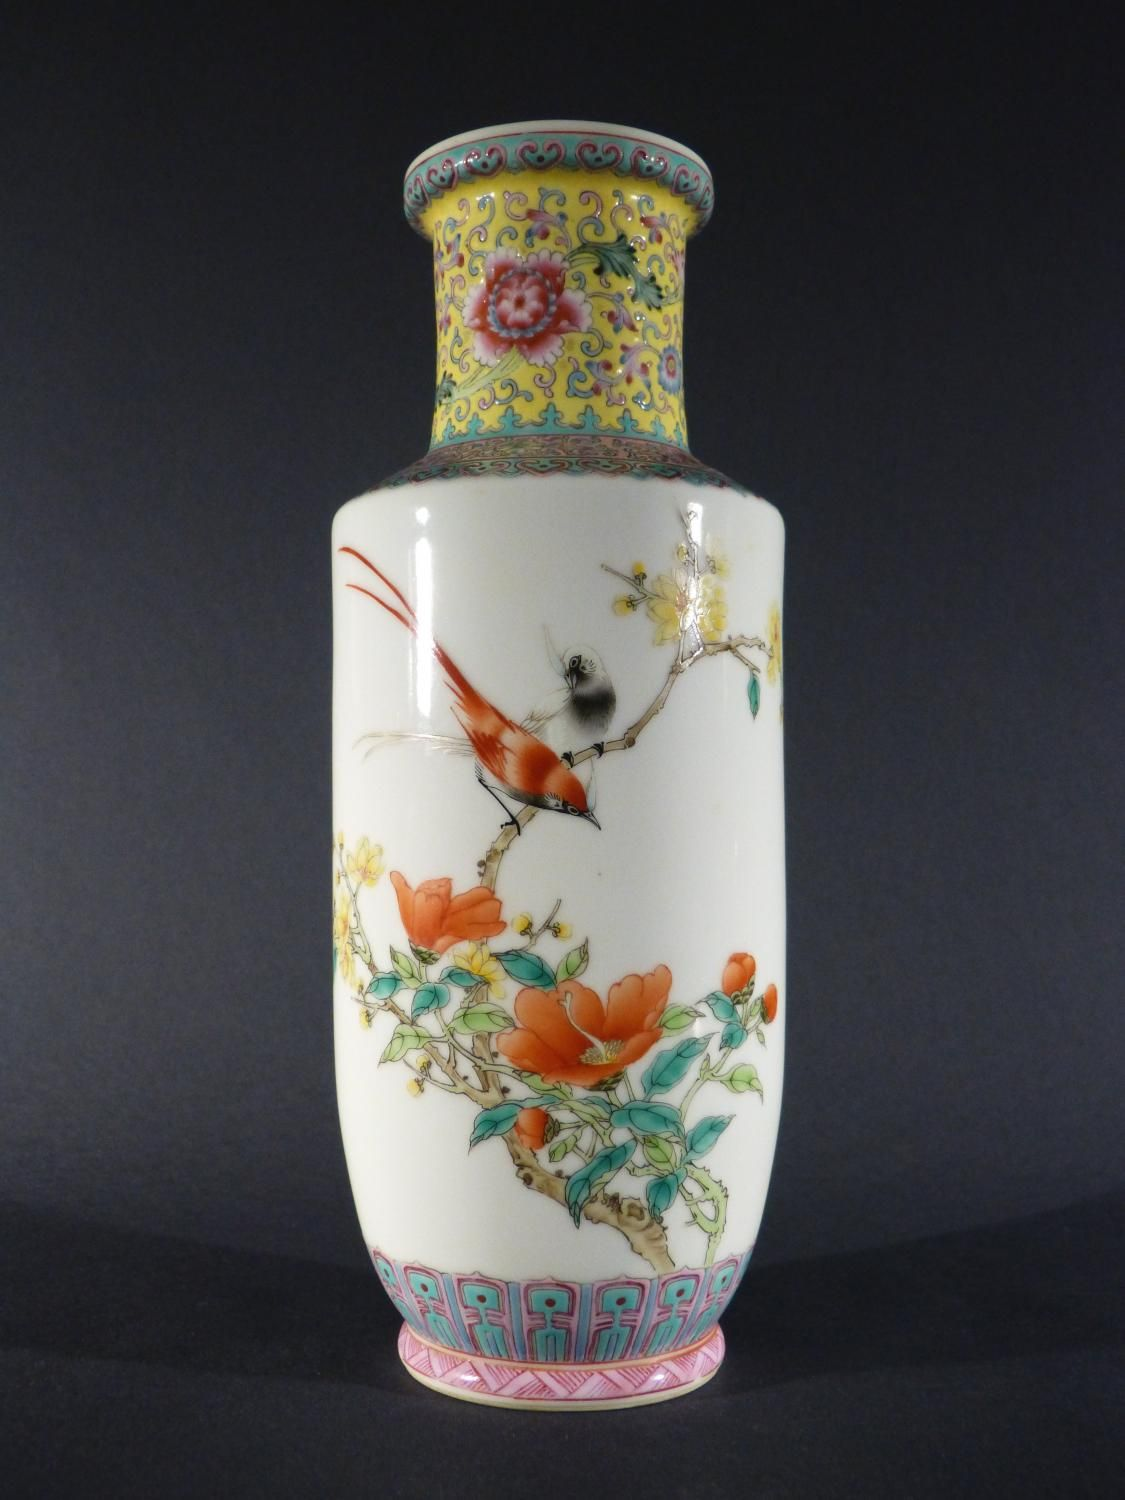 Antique for sale Qing china chinese Qianlong vase birds decoration Shaped piece Ceramic Faïence Porcelain Decorative art